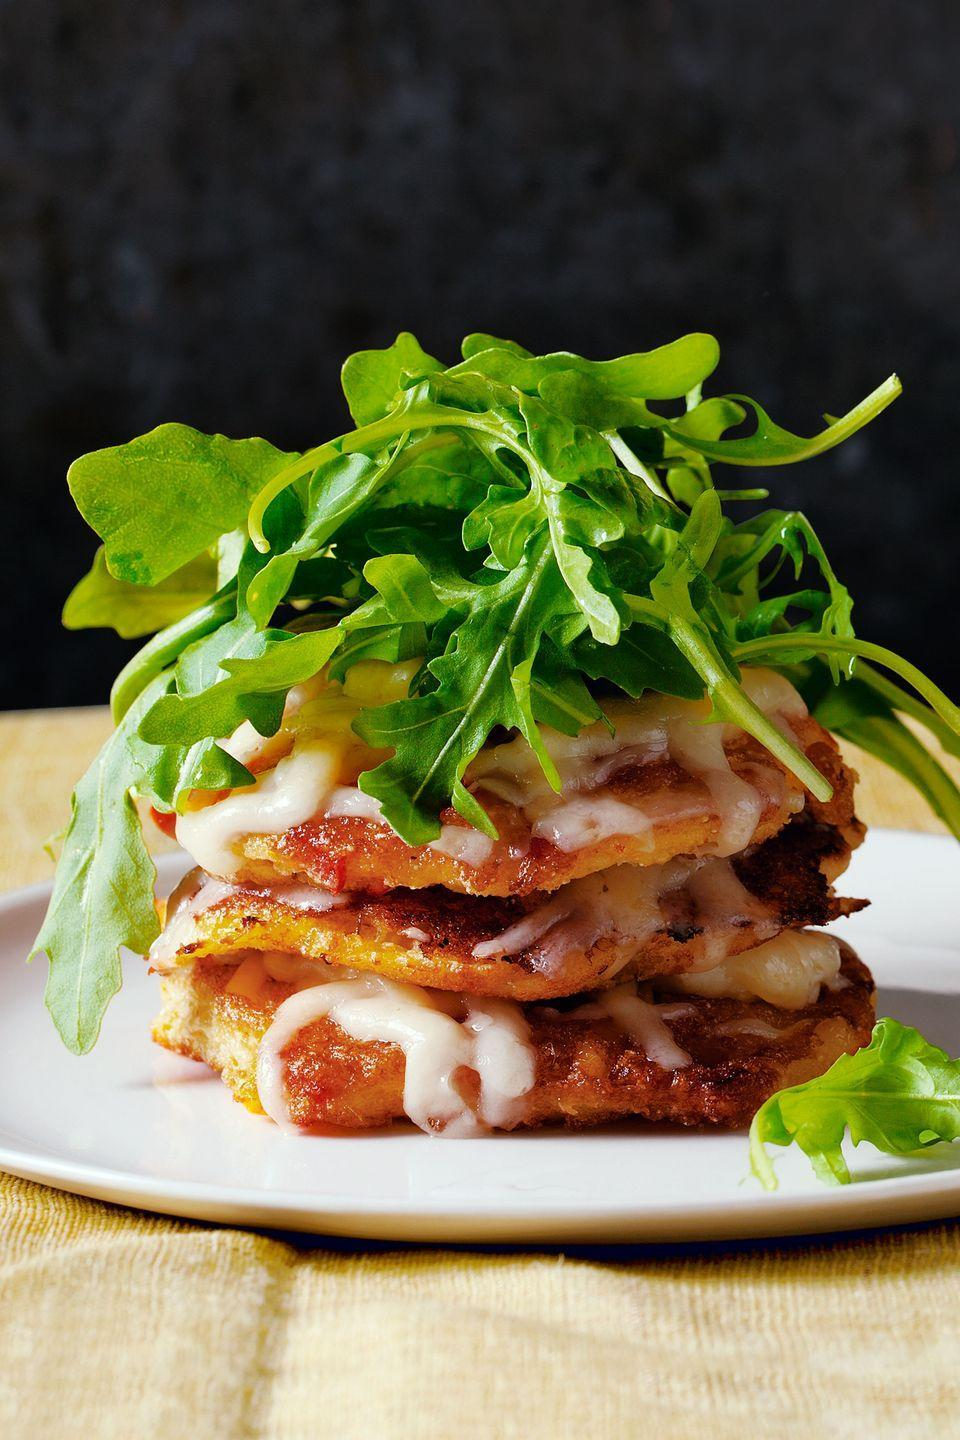 "Simple yet elegant, these sweet corn cakes topped with a fresh green salad and gooey Cheddar are the ideal summer dinner. <a href=""https://www.countryliving.com/food-drinks/recipes/a5275/corn-cake-stacks-aged-cheddar-arugula-recipe-clx0614/"" rel=""nofollow noopener"" target=""_blank"" data-ylk=""slk:Get the recipe."" class=""link rapid-noclick-resp""><strong>Get the recipe.</strong></a>"